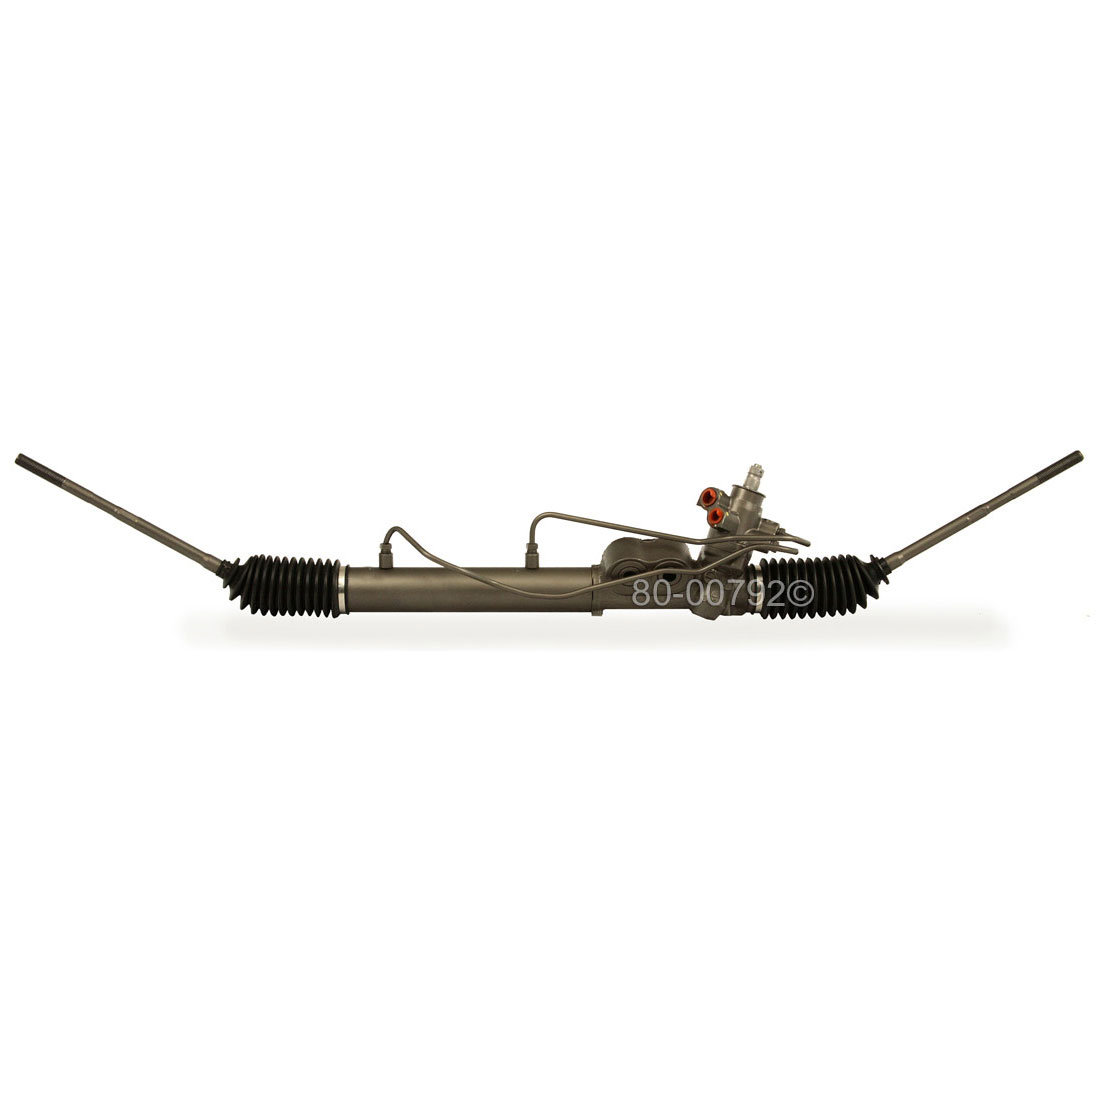 Infiniti I35 Power Steering Rack